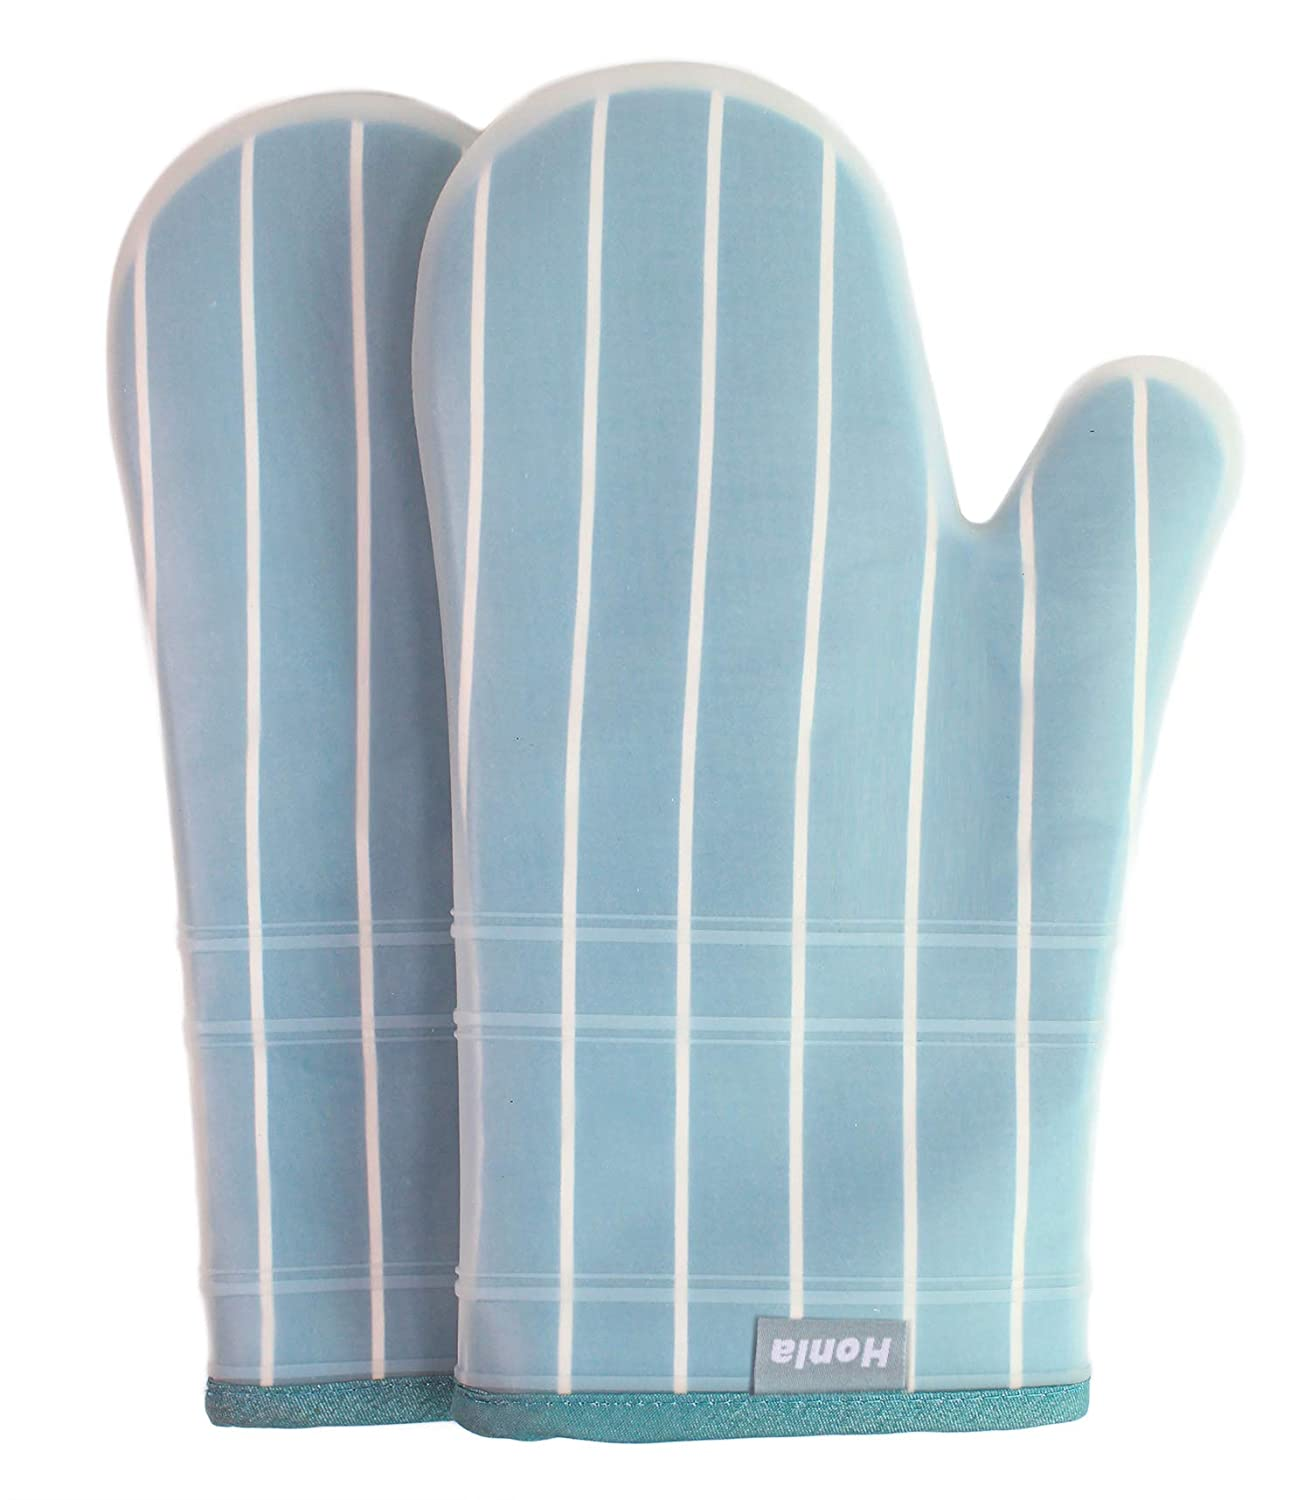 Honla Silicone Oven Mitts with Stripe Fabric and Terry Cloths Lining,Heat Resistant to 500 F,1 Pair of Kitchen Oven Gloves for Cooking,Baking,Grilling,Barbecue Potholders,Teal